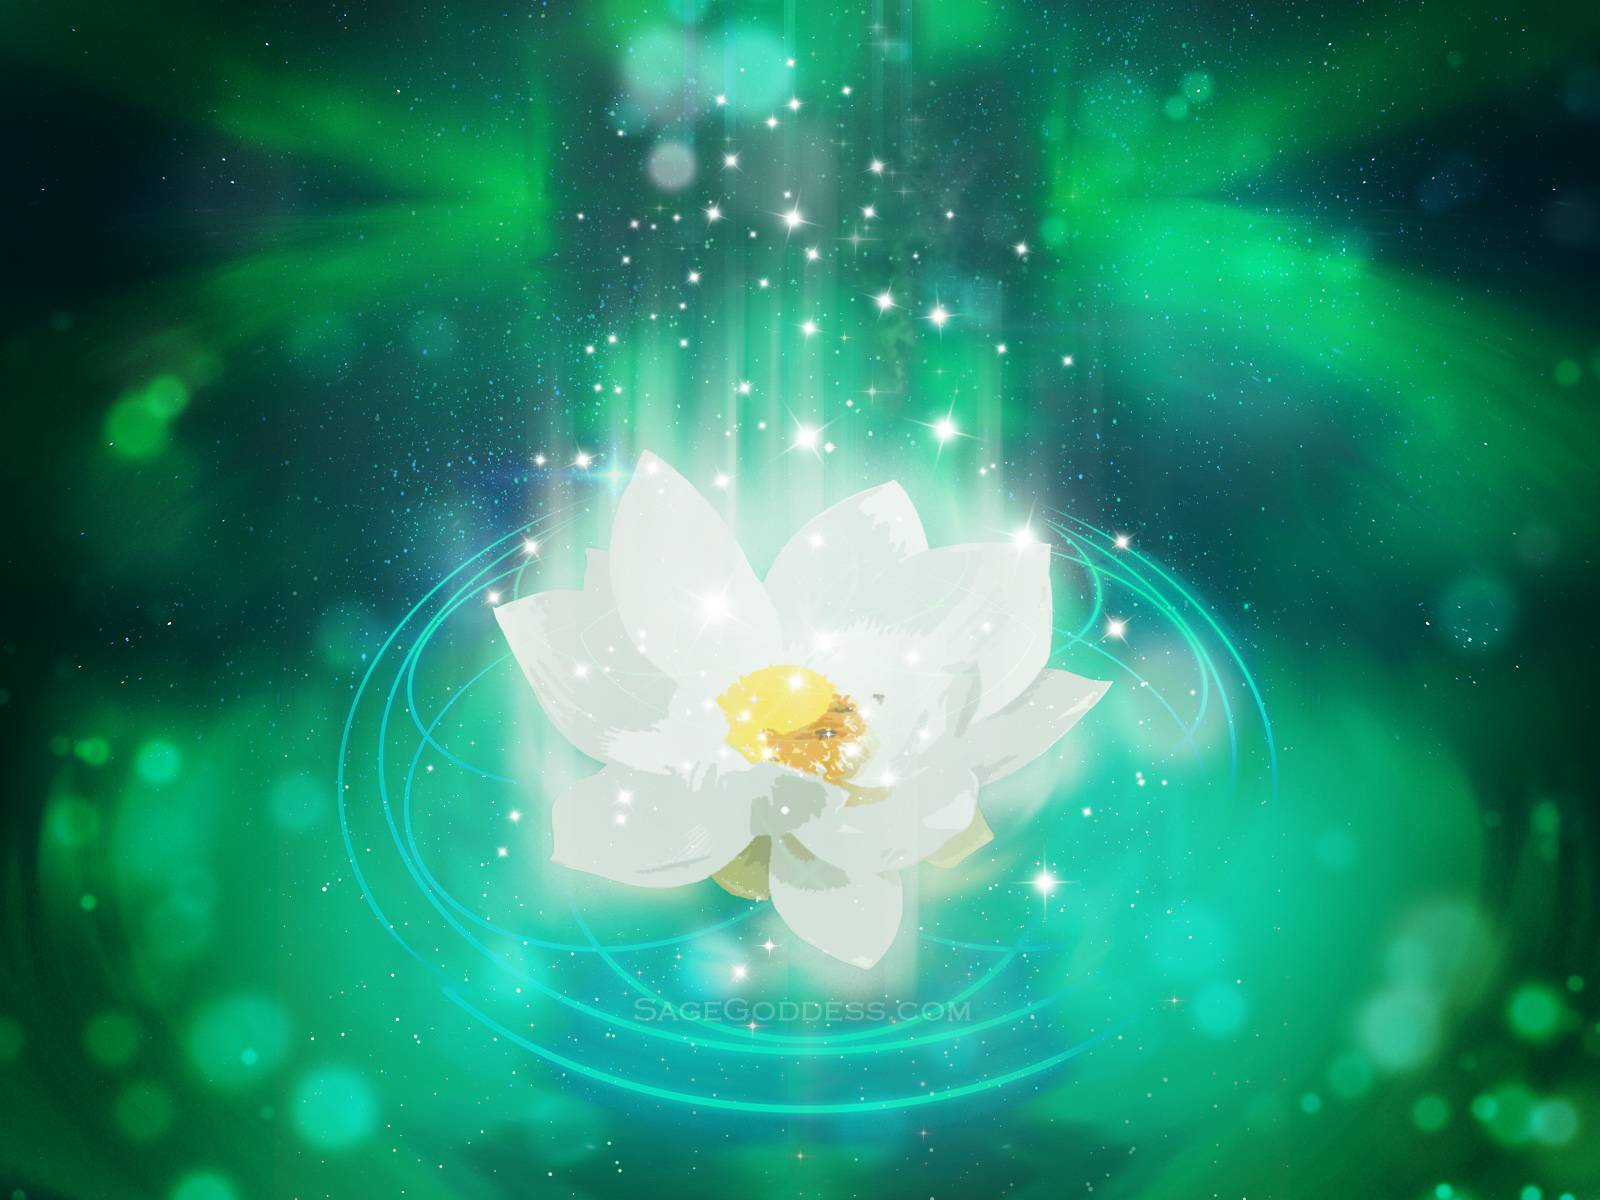 Free Custom Sage Goddess Downloadable Lotus Flower Wallpaper Sage